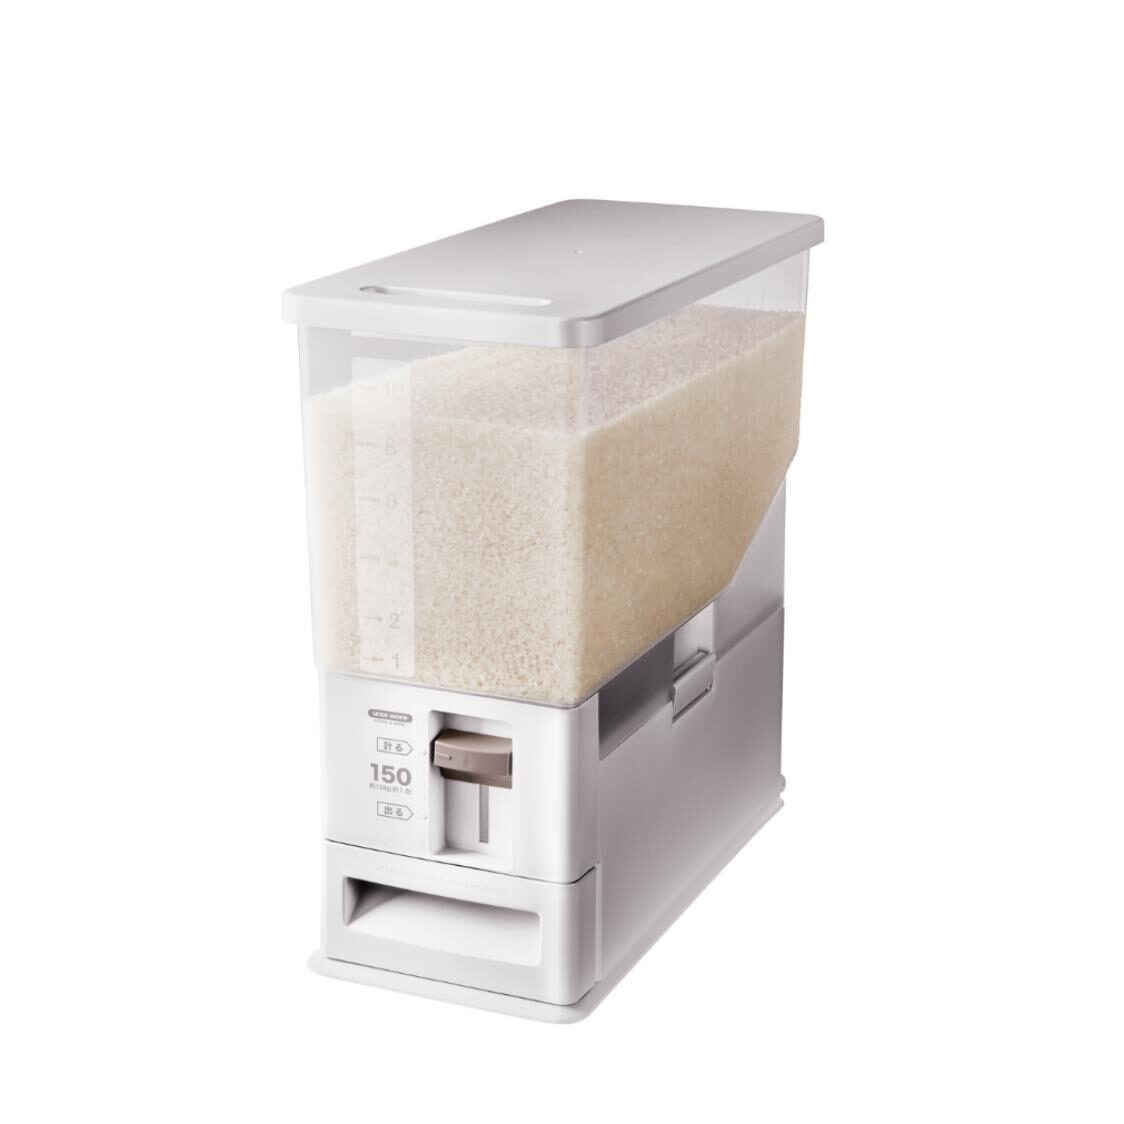 Unix Ware Rice Stocker White 12kg 7503